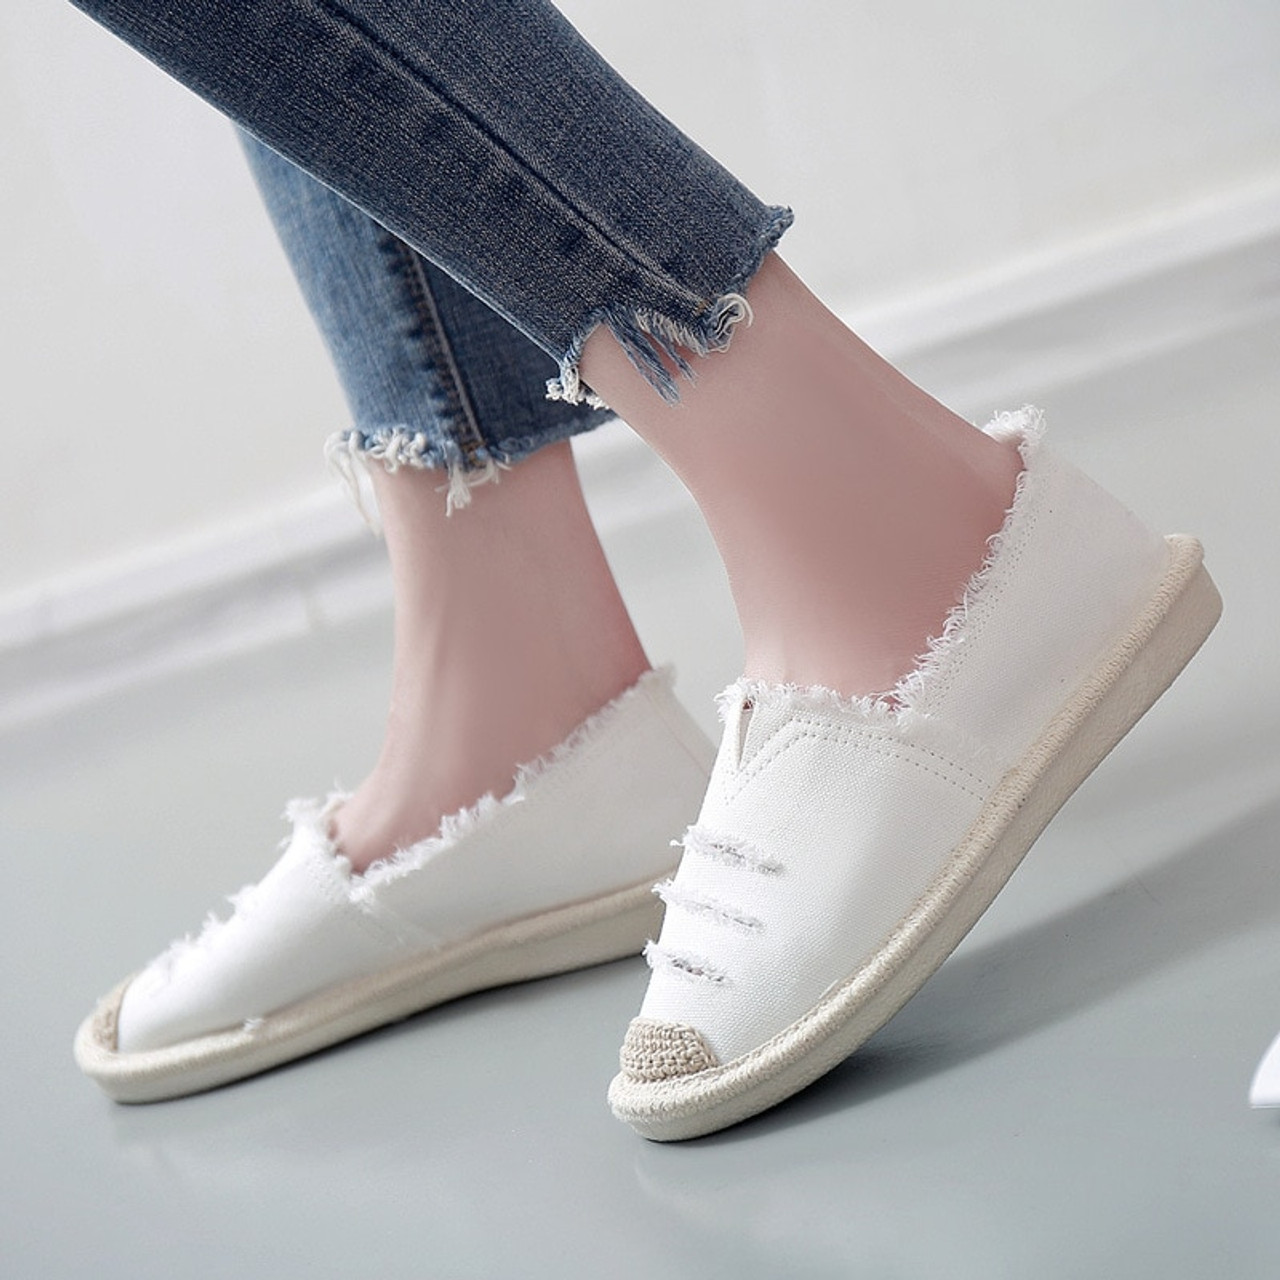 daa6c703ab0 ... Women Flats Shoes Slip On Casual Ladies Canvas Shoes Lazy Loafers  Breathable Female Espadrilles 2018 Spring ...